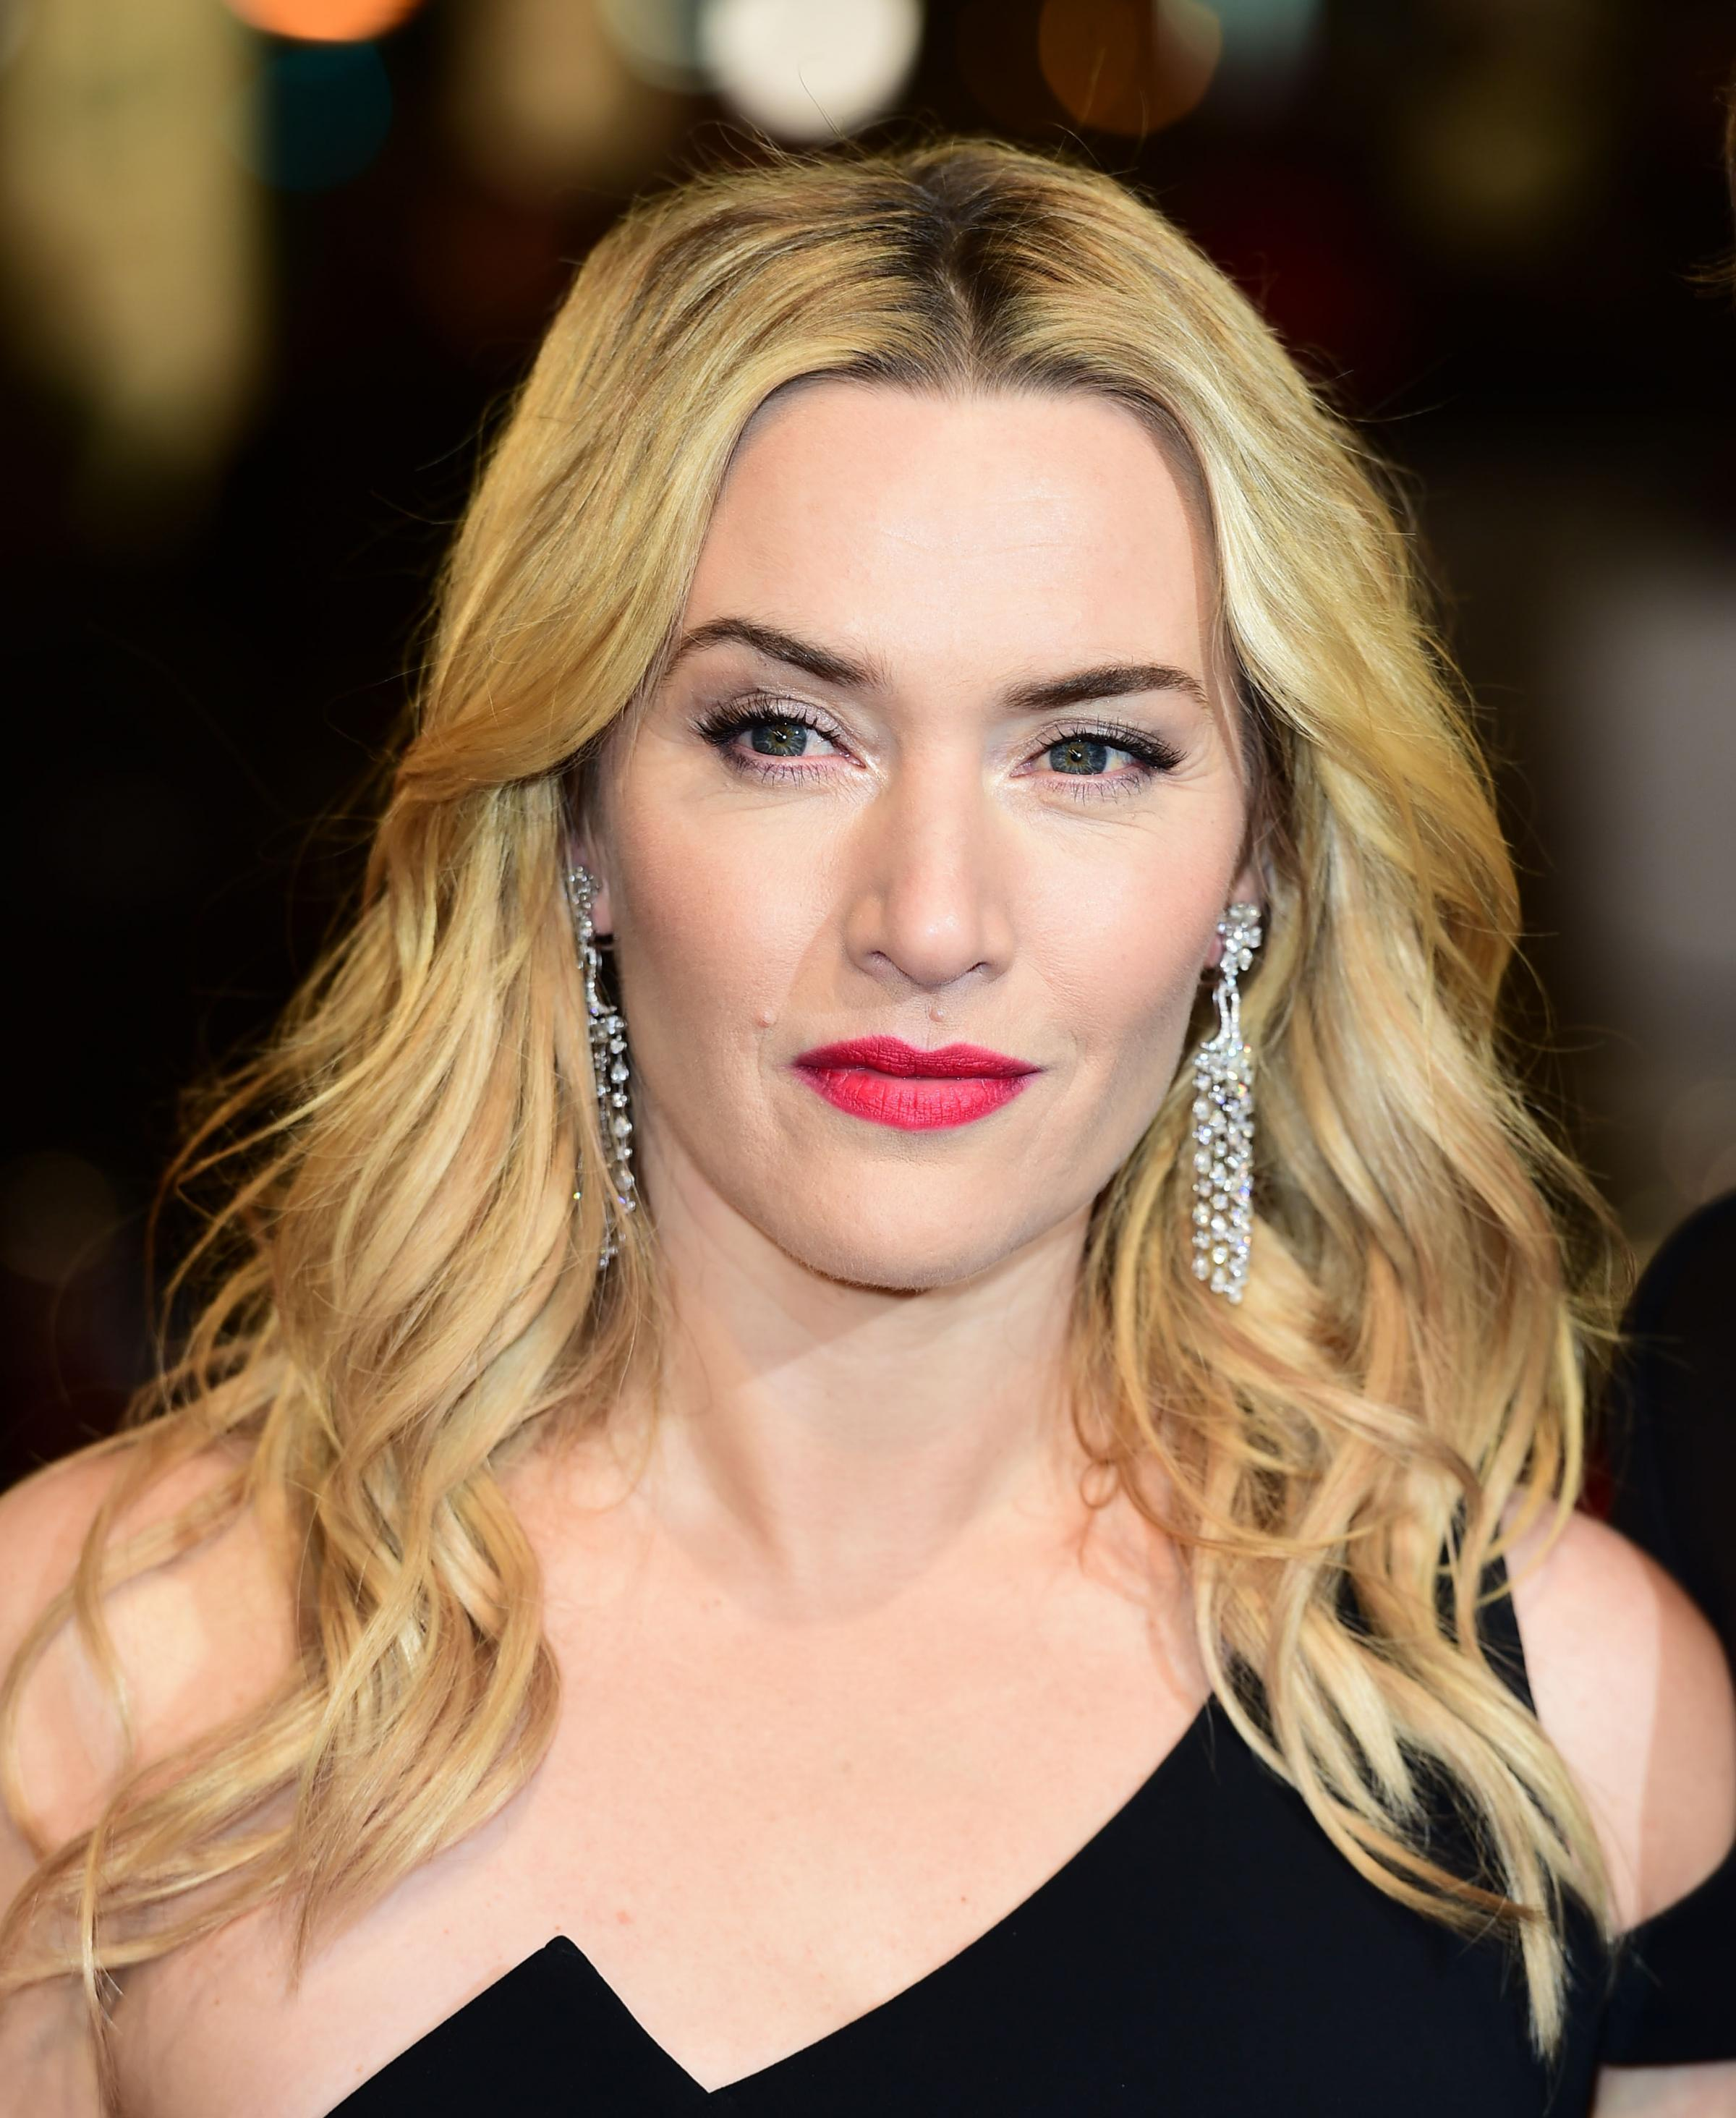 Hollywood star Kate Winslet